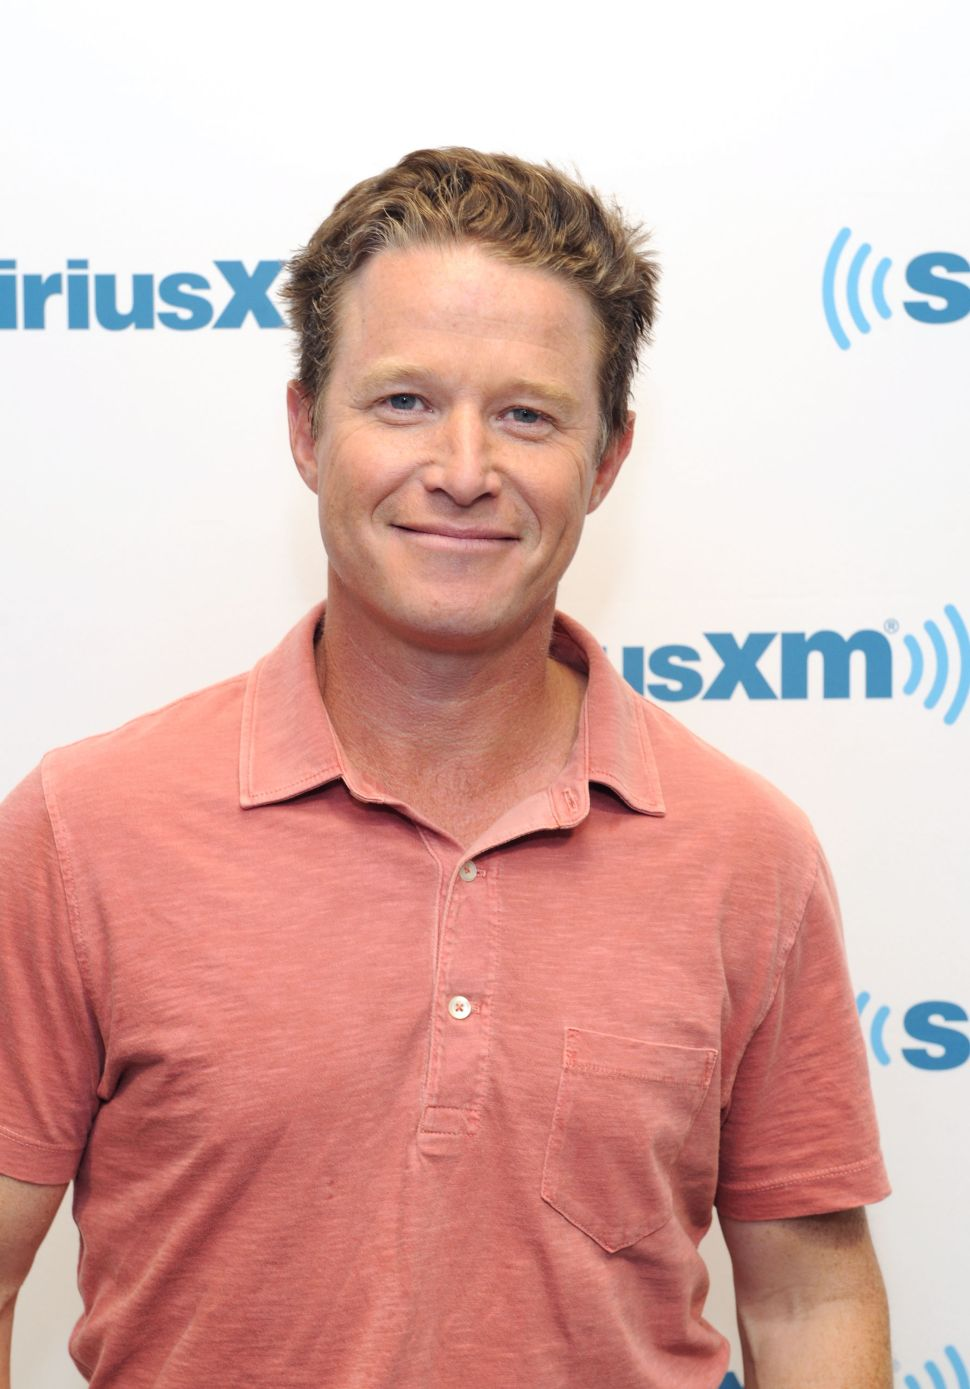 Billy Bush Loses Over $1 Million in Townhouse Sale